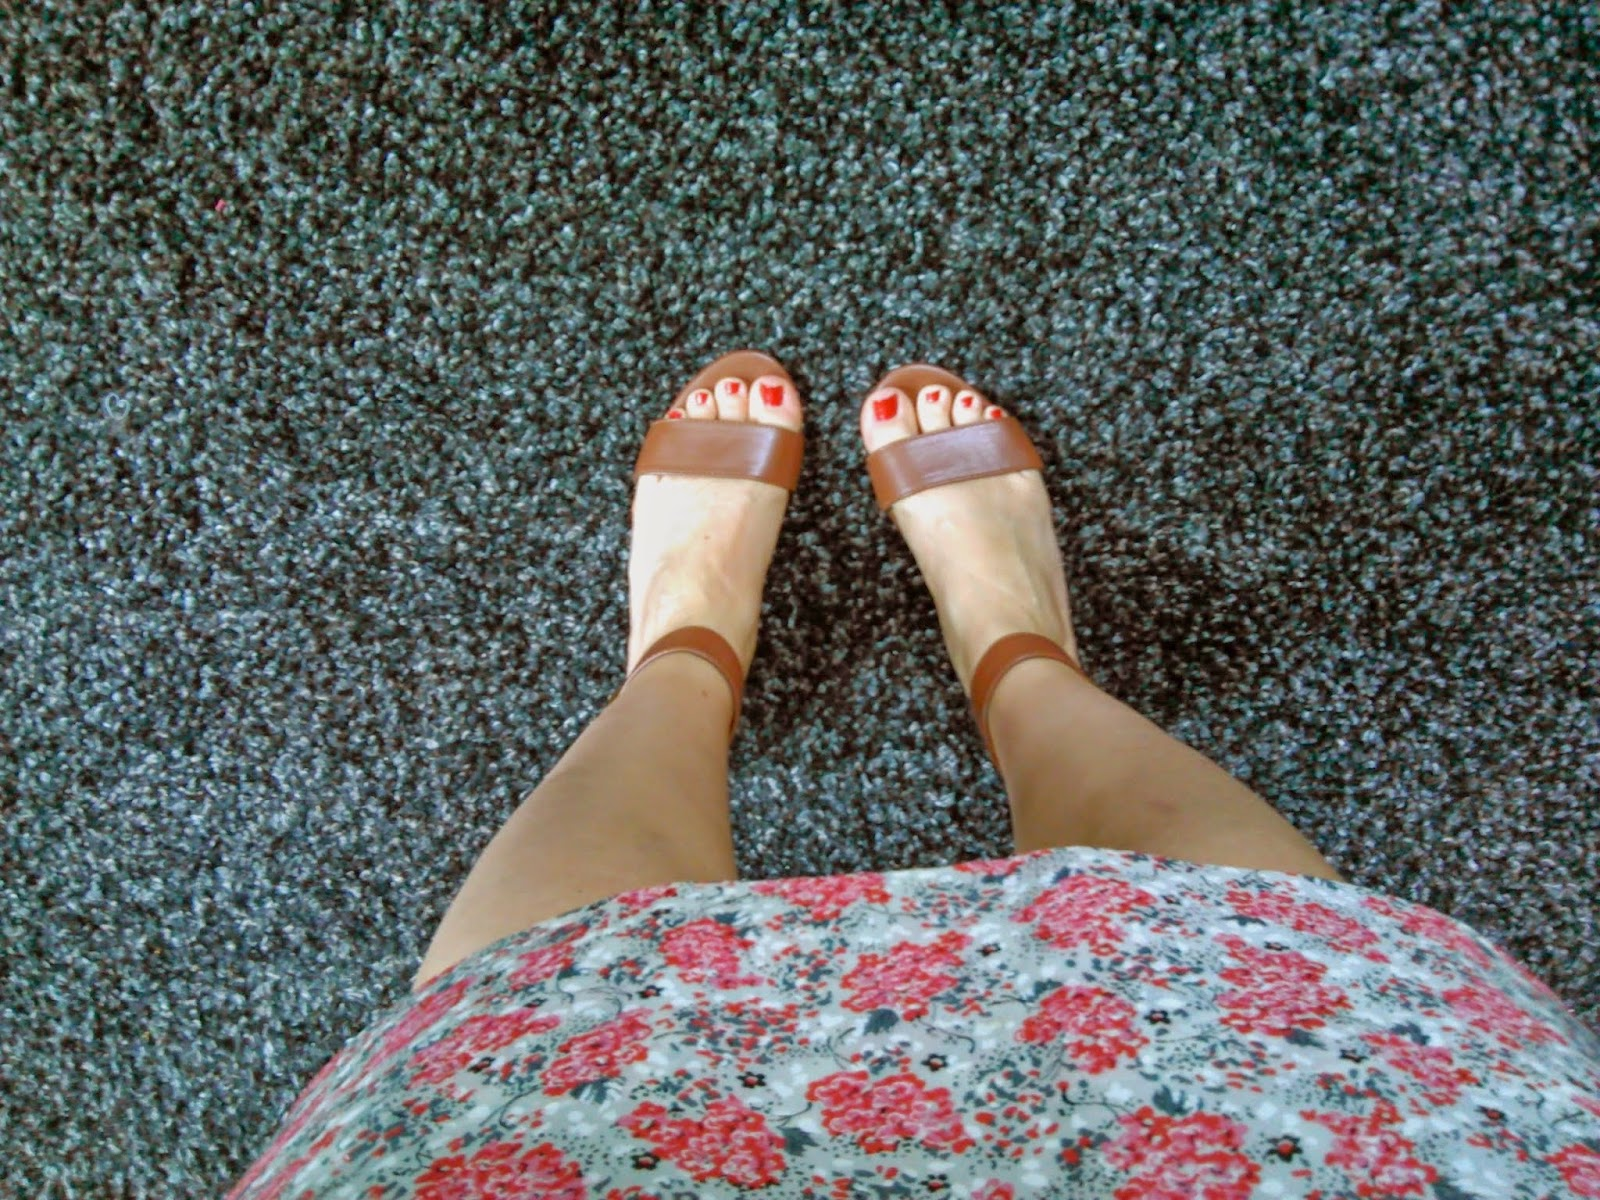 New Thing: Wear Wedges Every Day For A Week